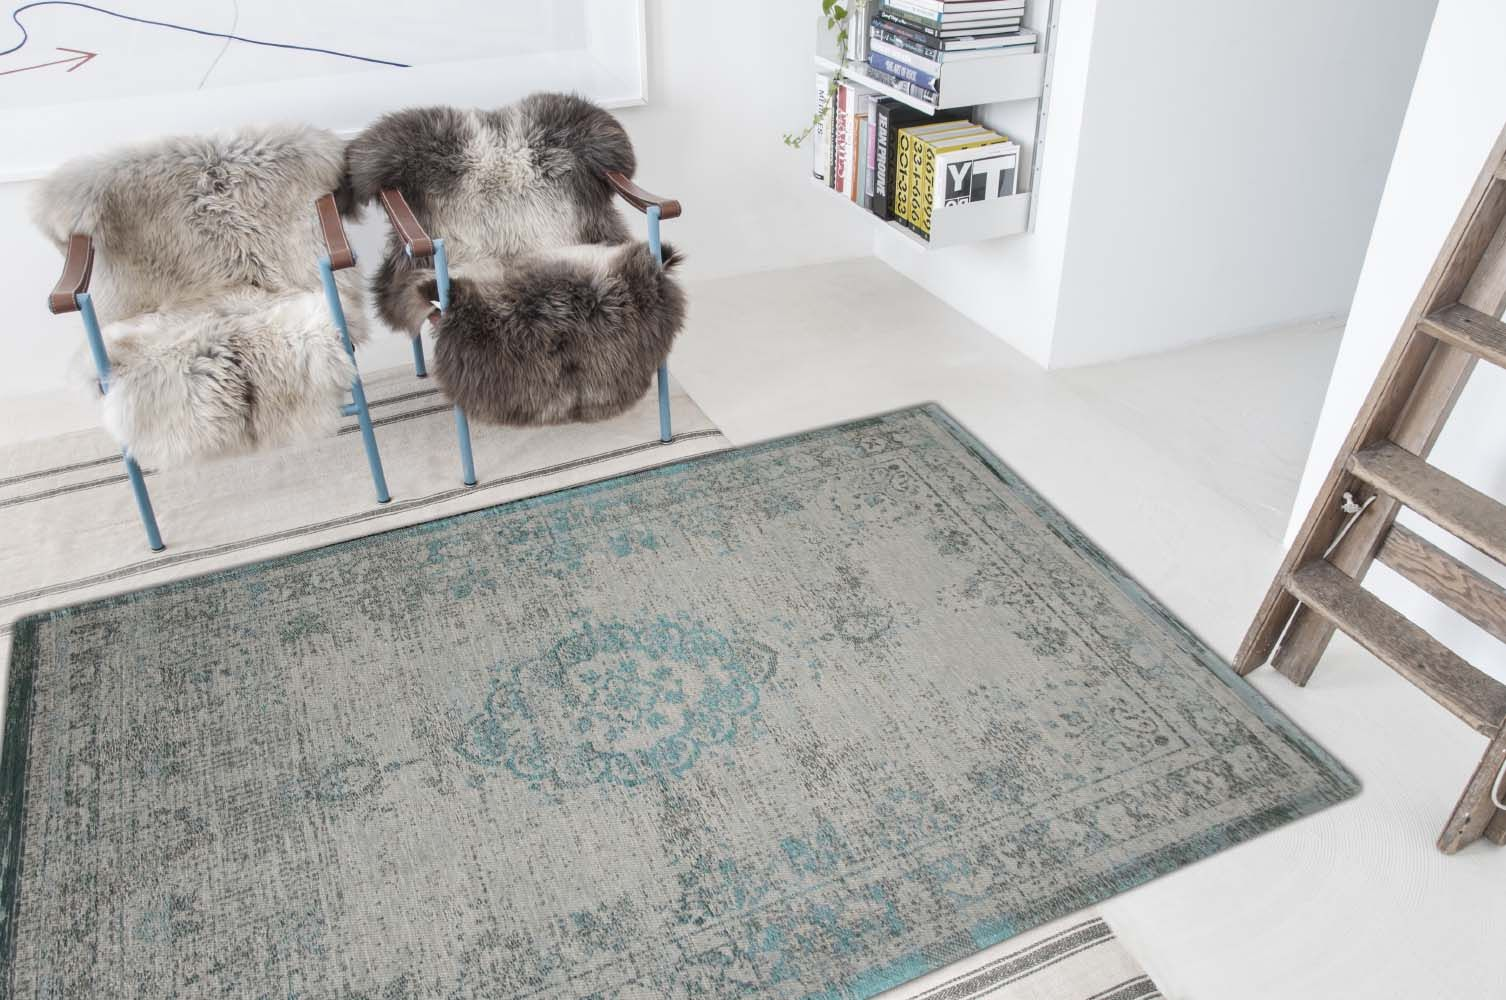 Fading World Jade Oyster 8259 Large Rugs For Living Rooms And Bedrooms From Louis De Poortere Fading World Collection Us Green Rug Luxury Rug Medallion Rug